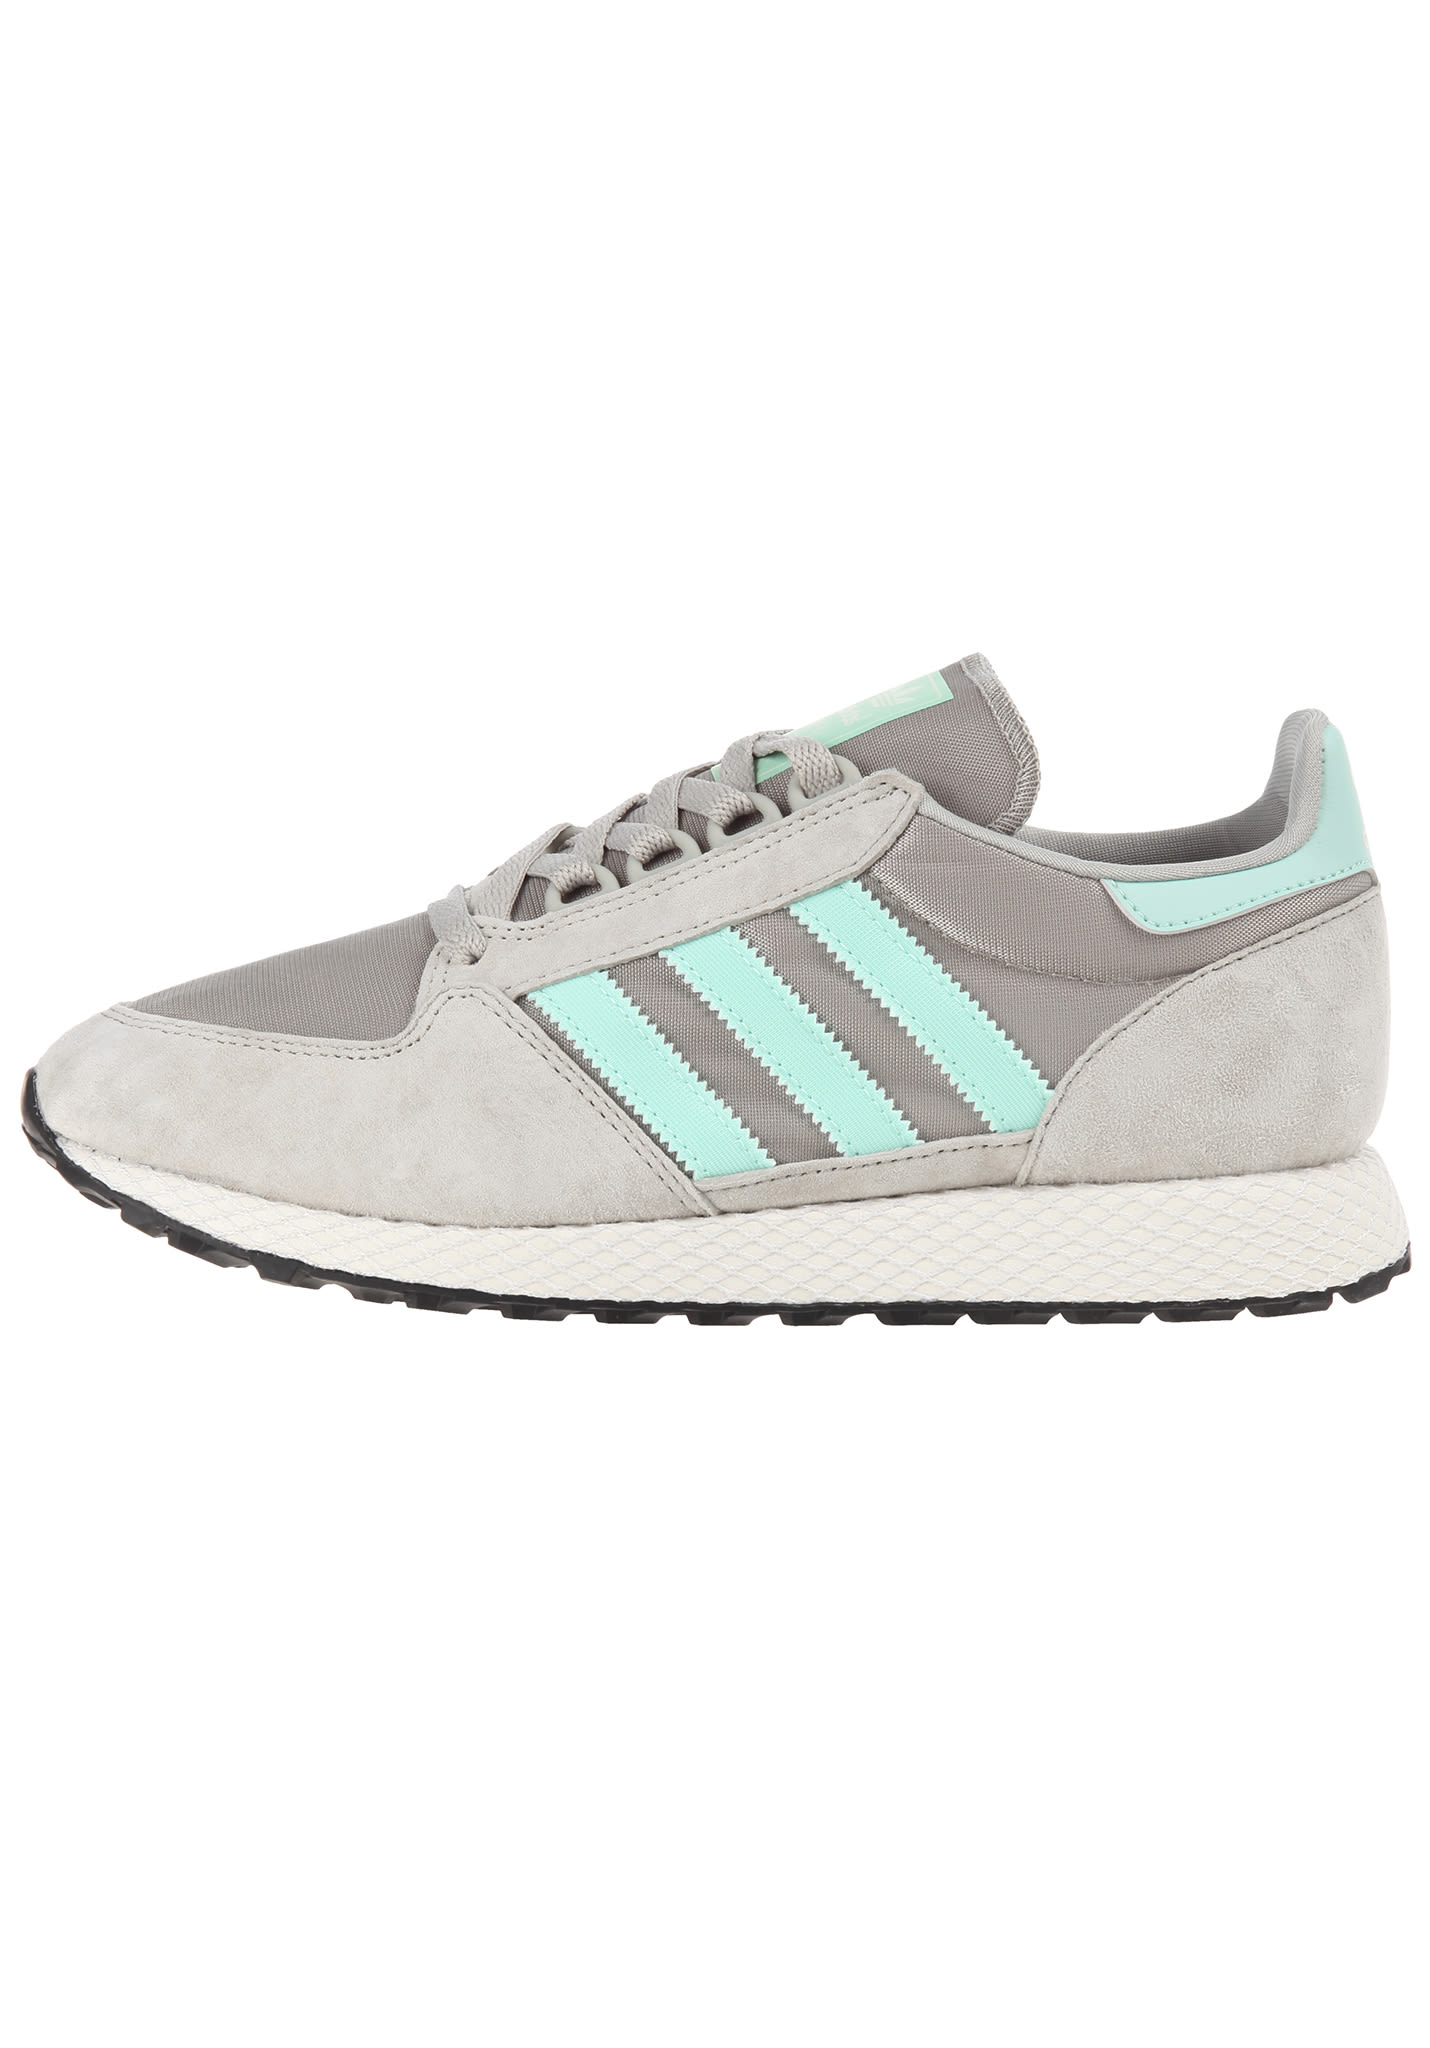 brand new a76f6 98f29 ADIDAS ORIGINALS Forest Grove - Baskets pour Femme - Gris - Planet Sports